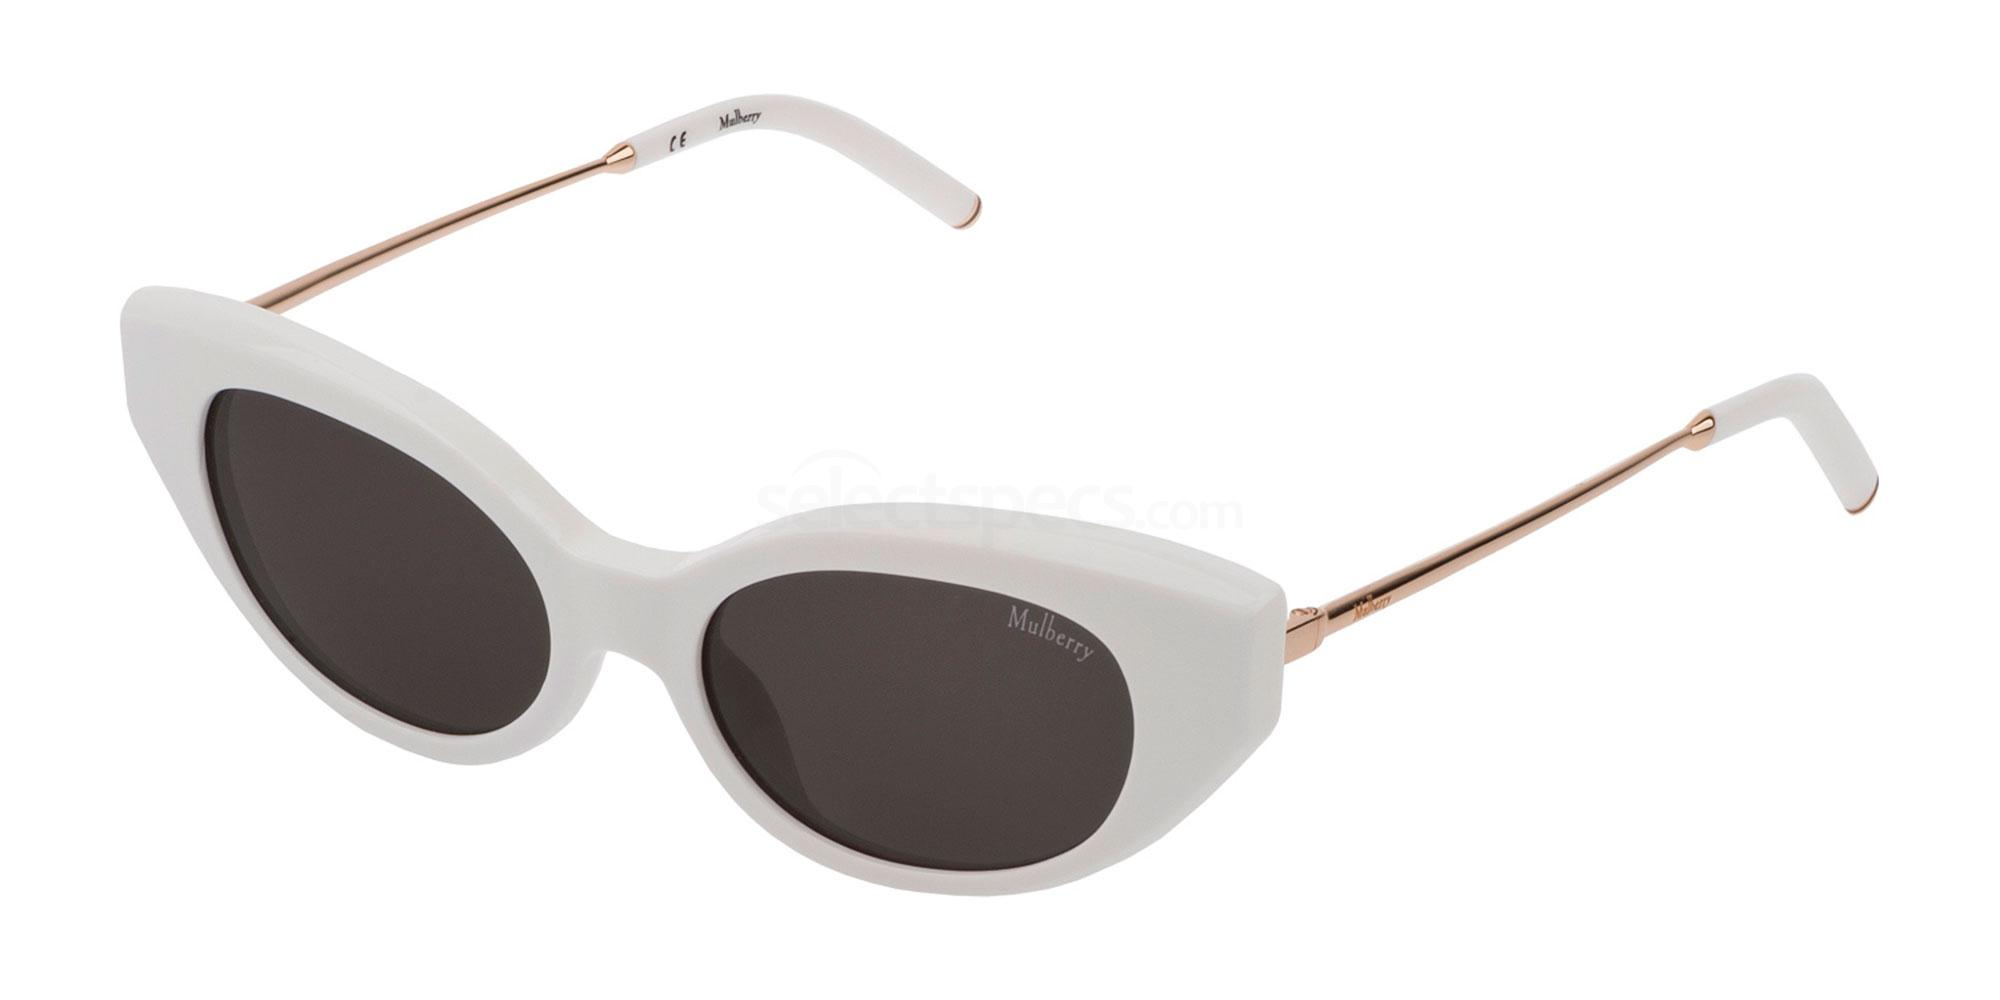 0847 SML005 Sunglasses, Mulberry